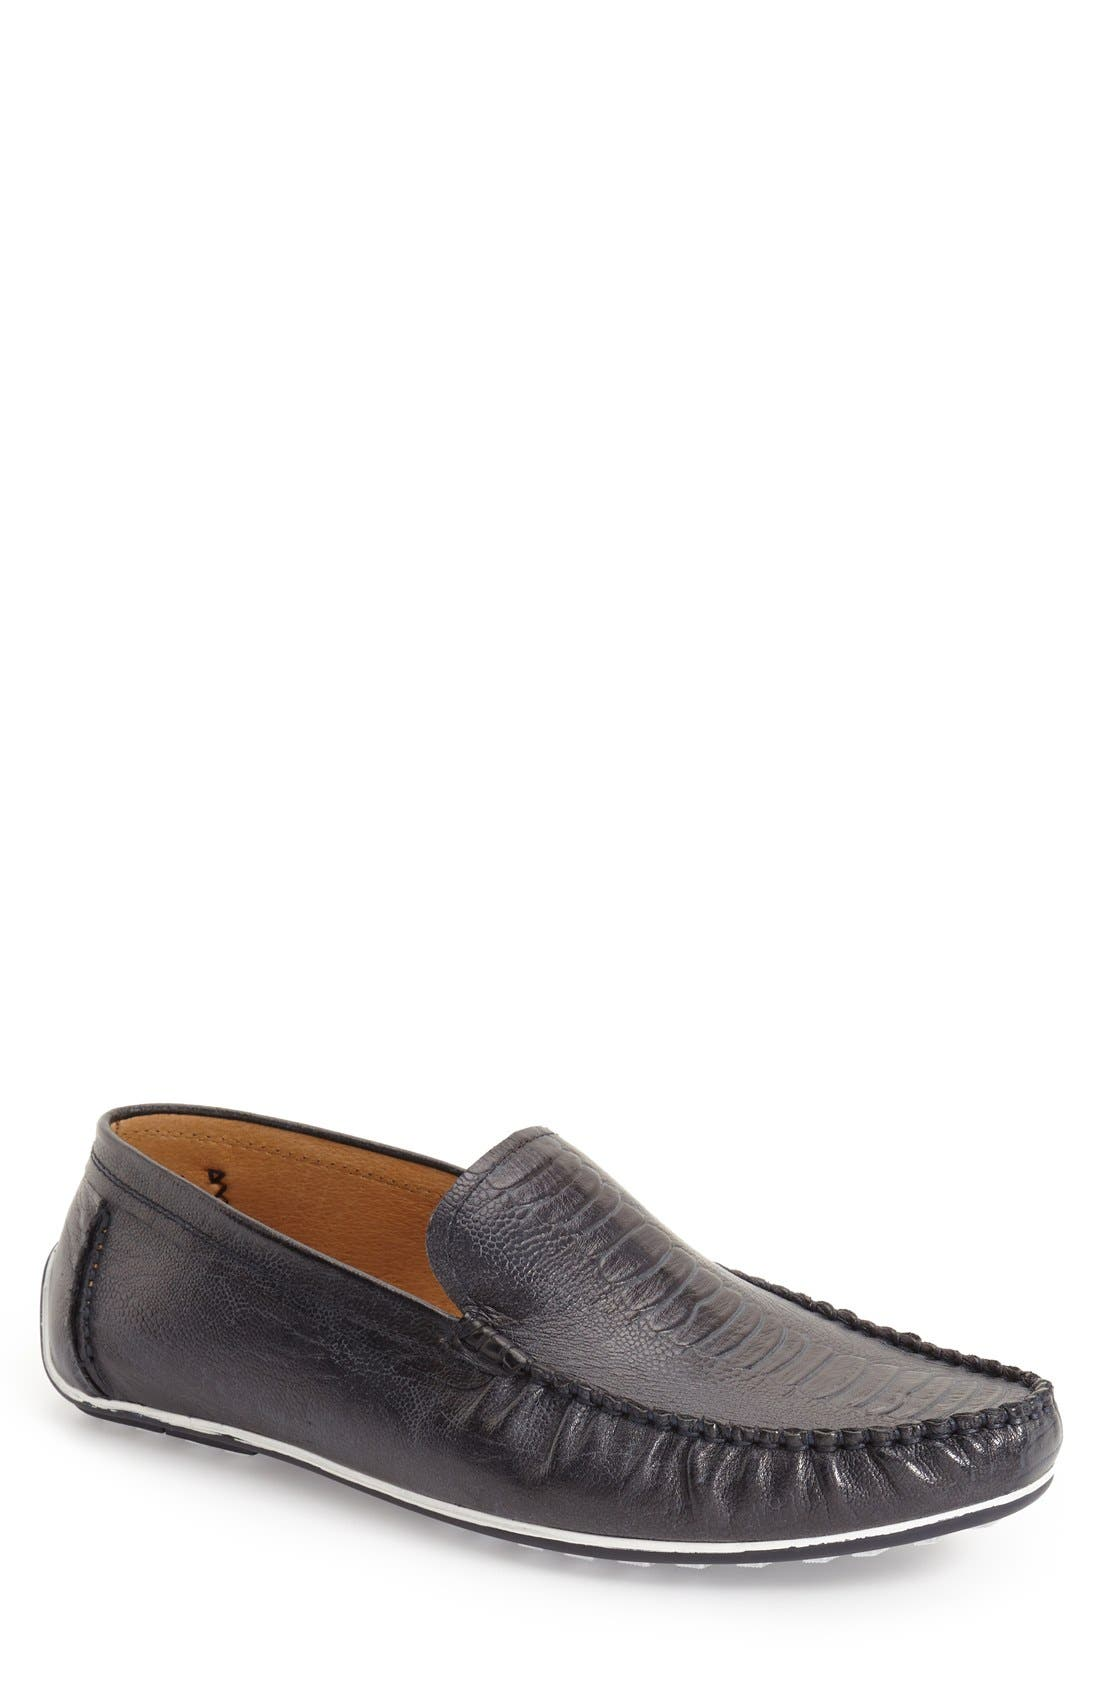 'Rembrandt' Driving Loafer,                             Main thumbnail 1, color,                             400